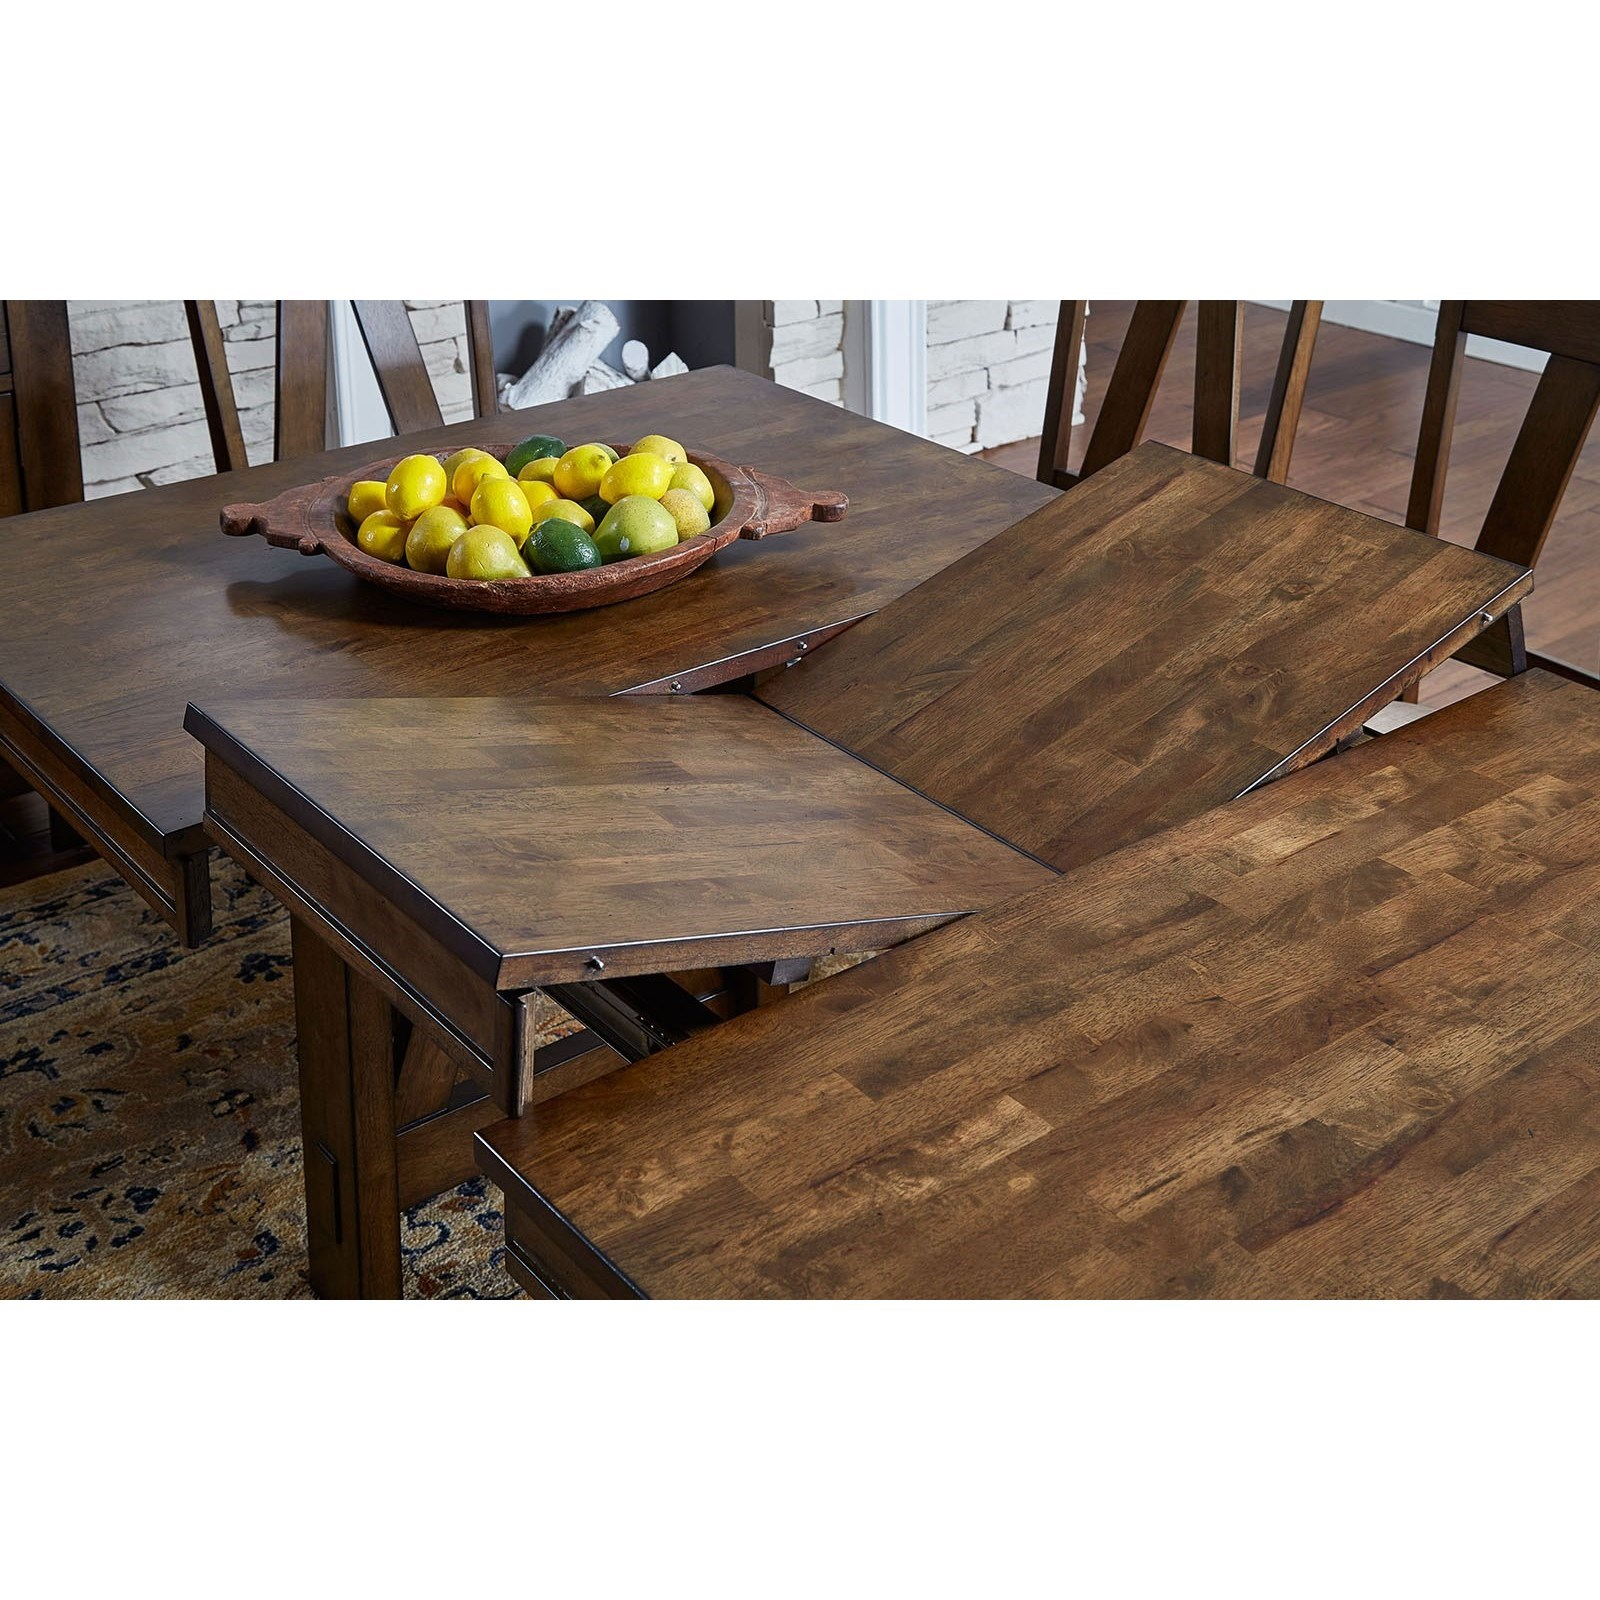 Dining Room Table With Leaf: AAmerica Eastwood Dining Solid Wood Counter Height Table